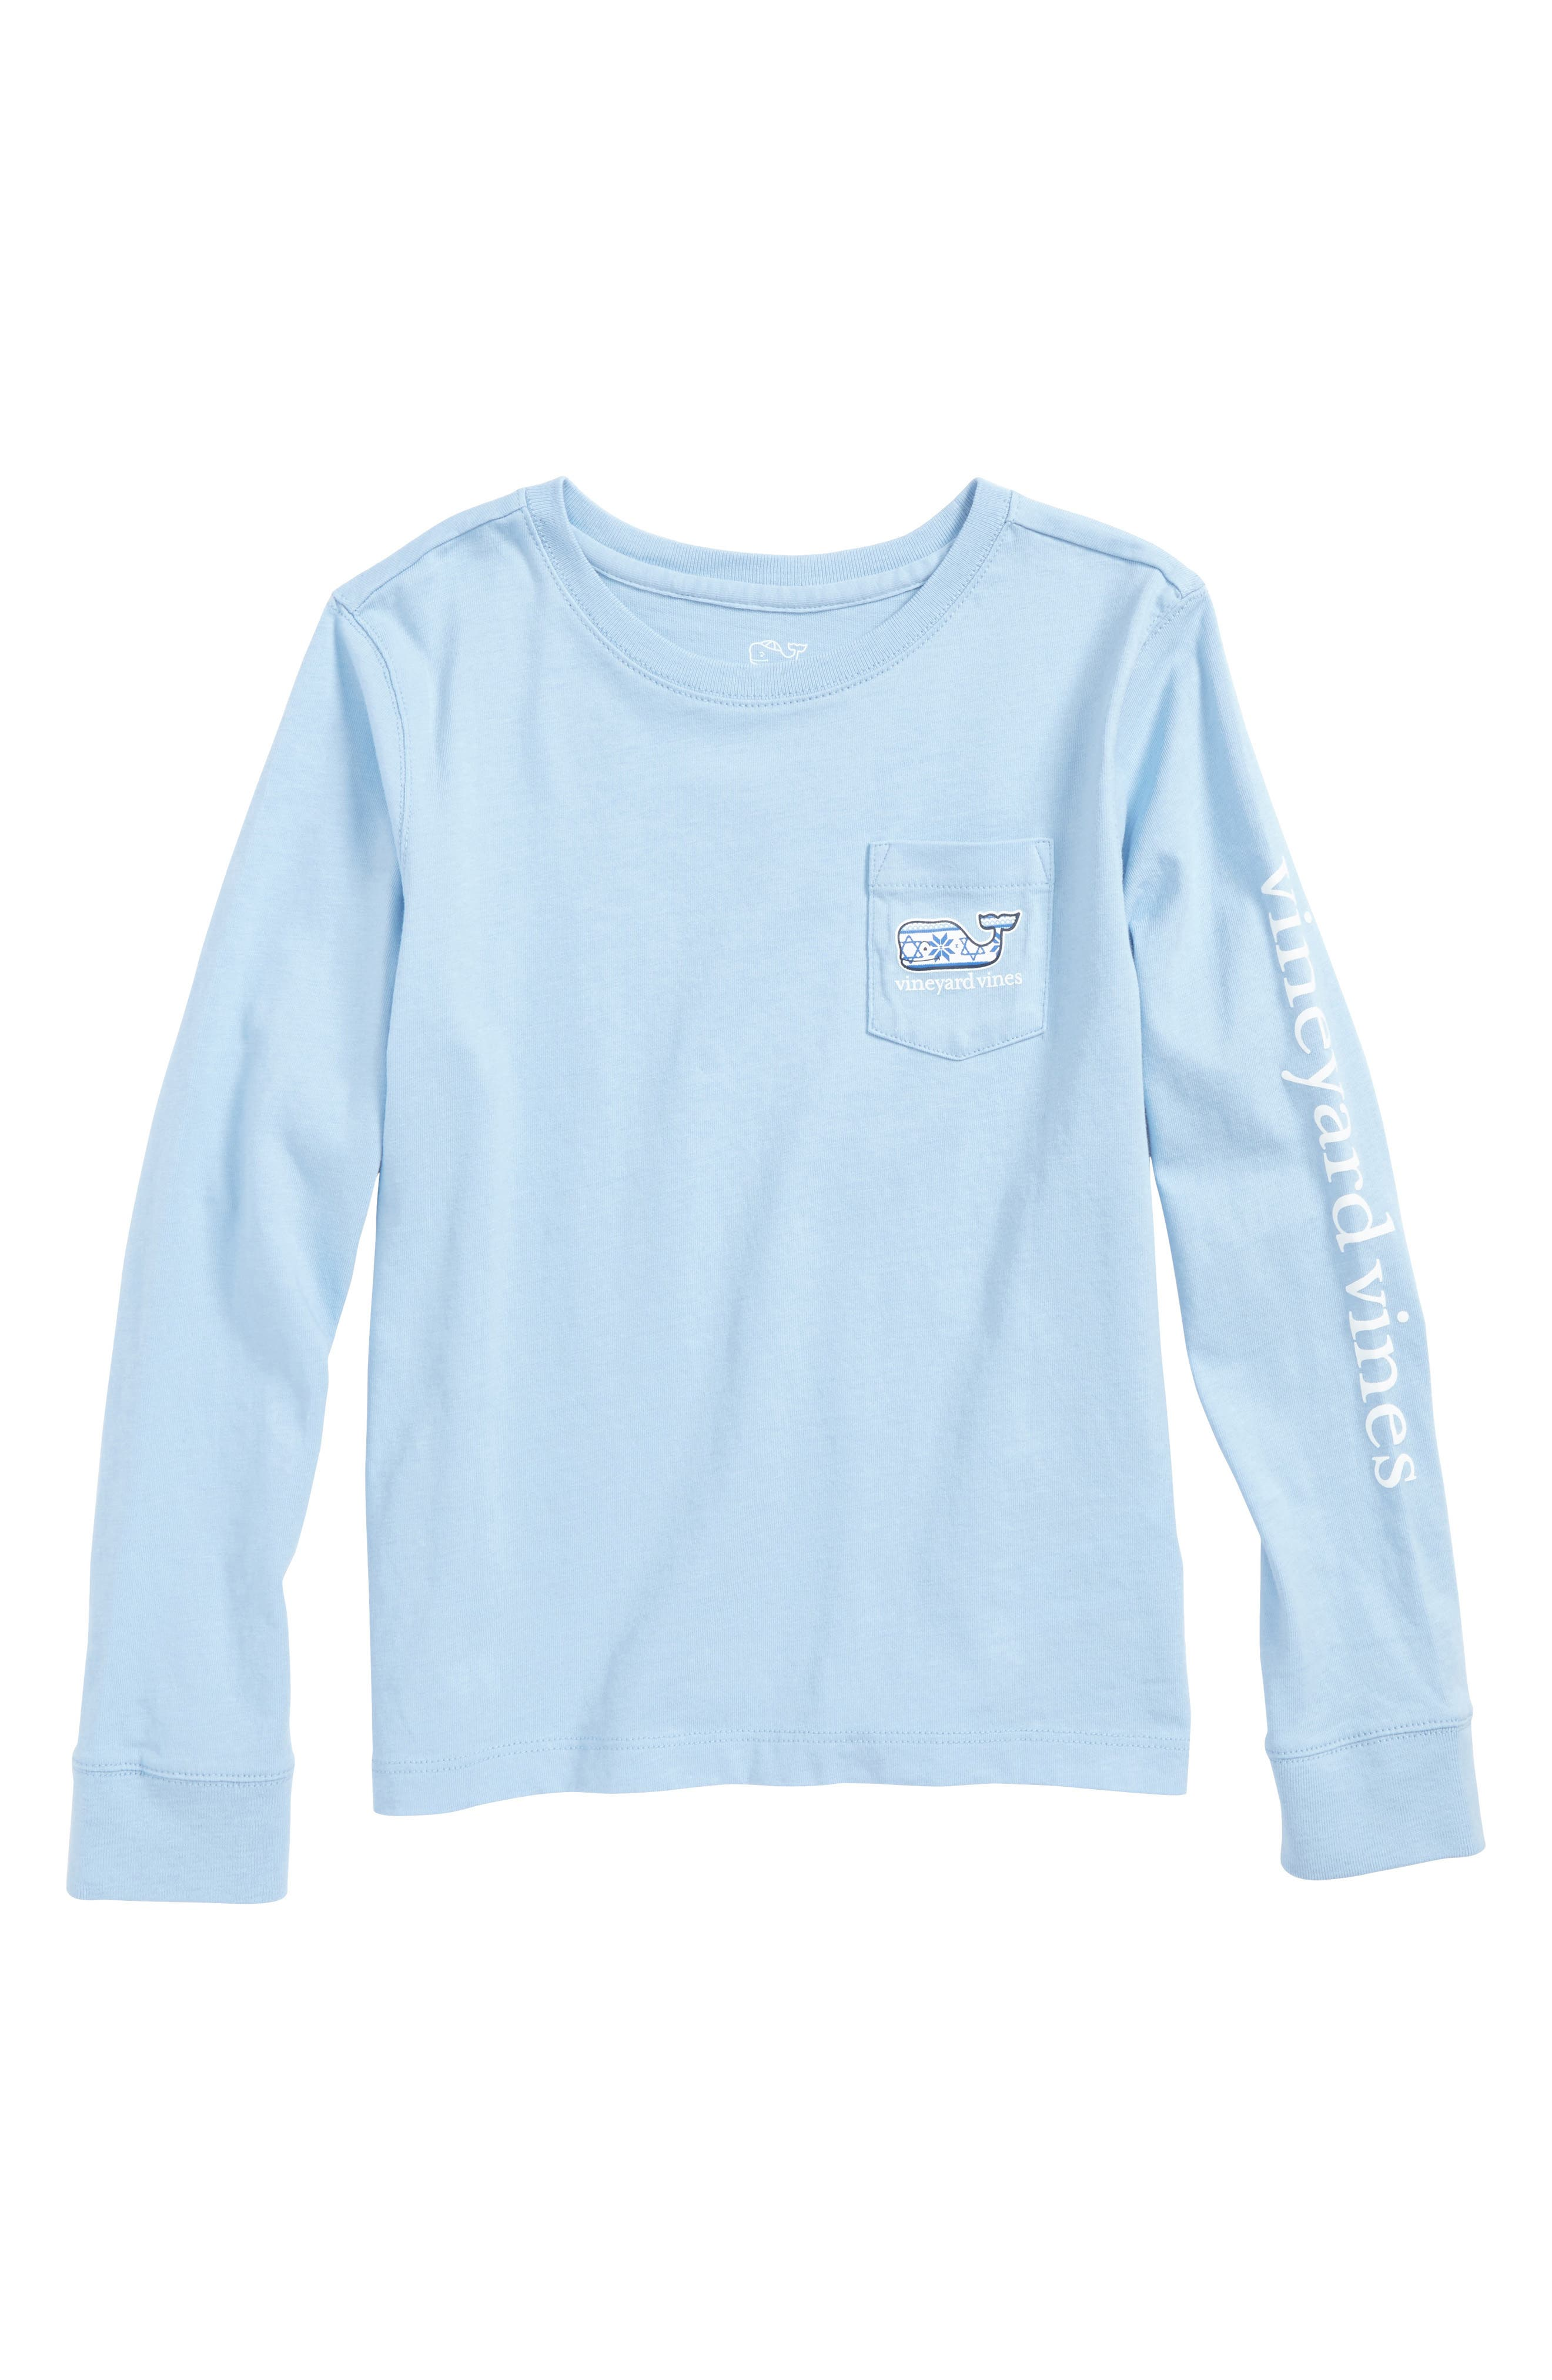 vineyard vines Happy Hanukkah 2017 Fair Isle Print T-Shirt (Toddler Boys & Little Boys)